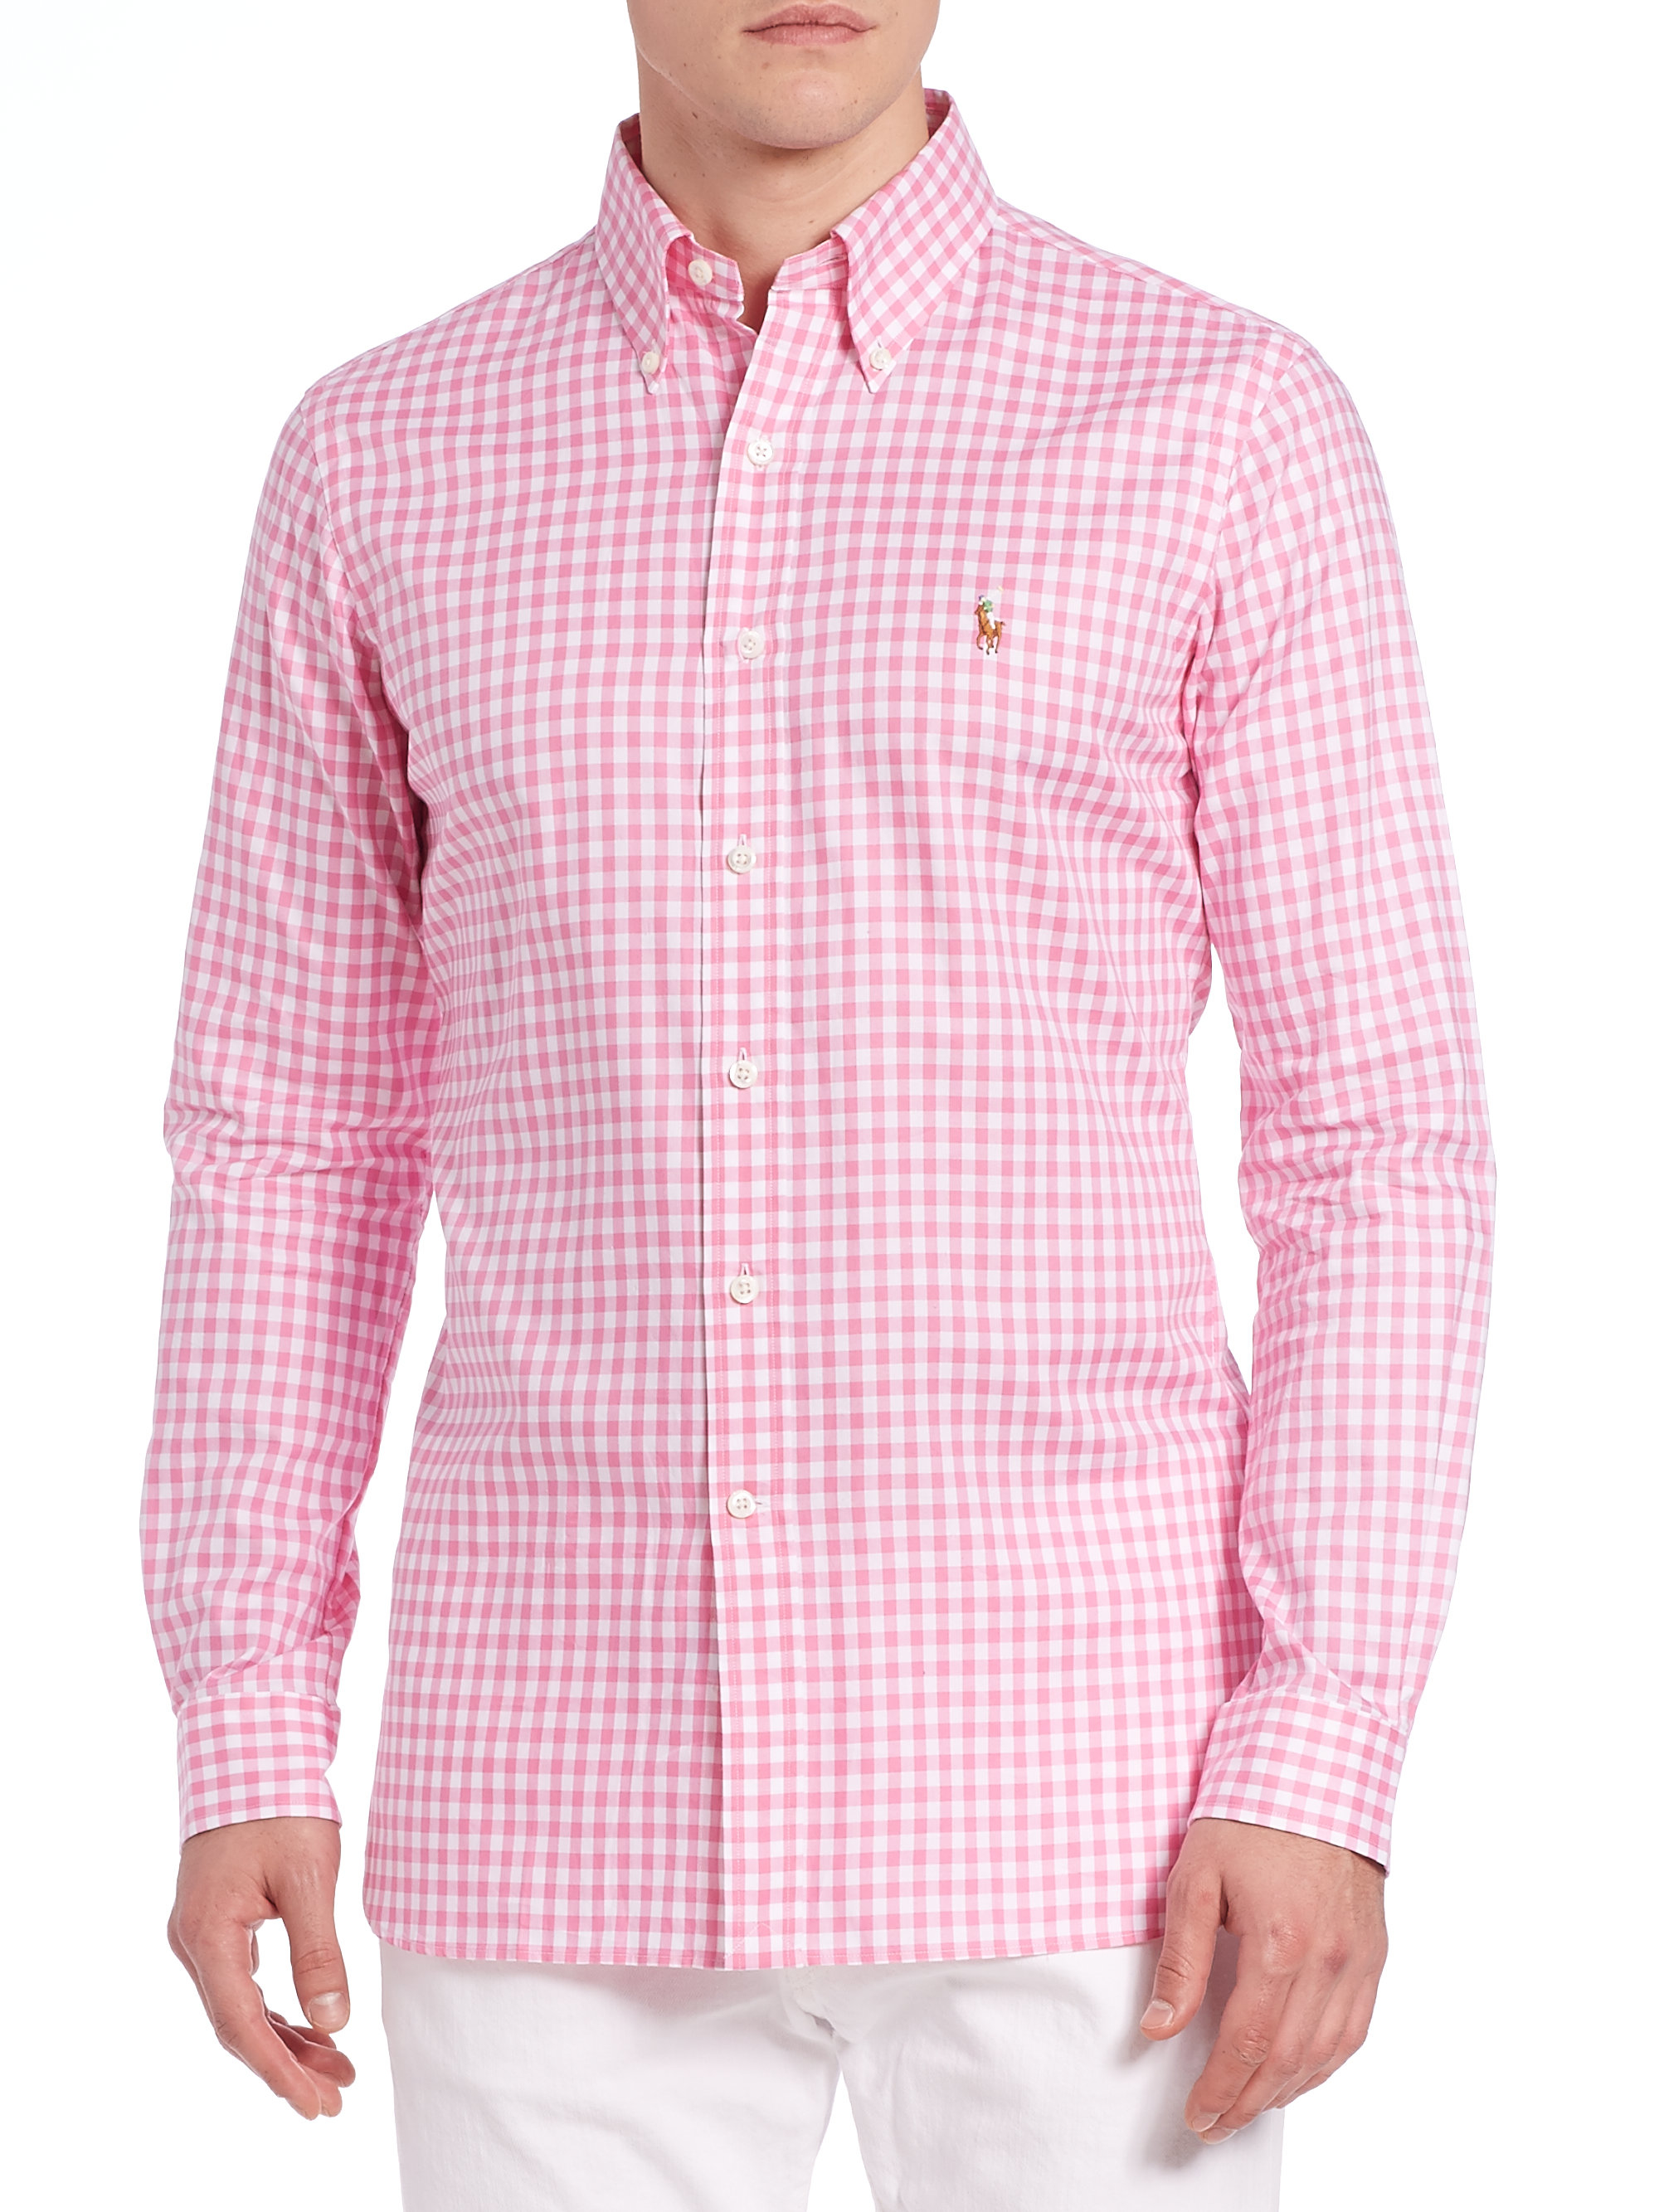 Polo ralph lauren gingham button up in pink for men lyst for Pink and white ralph lauren shirt